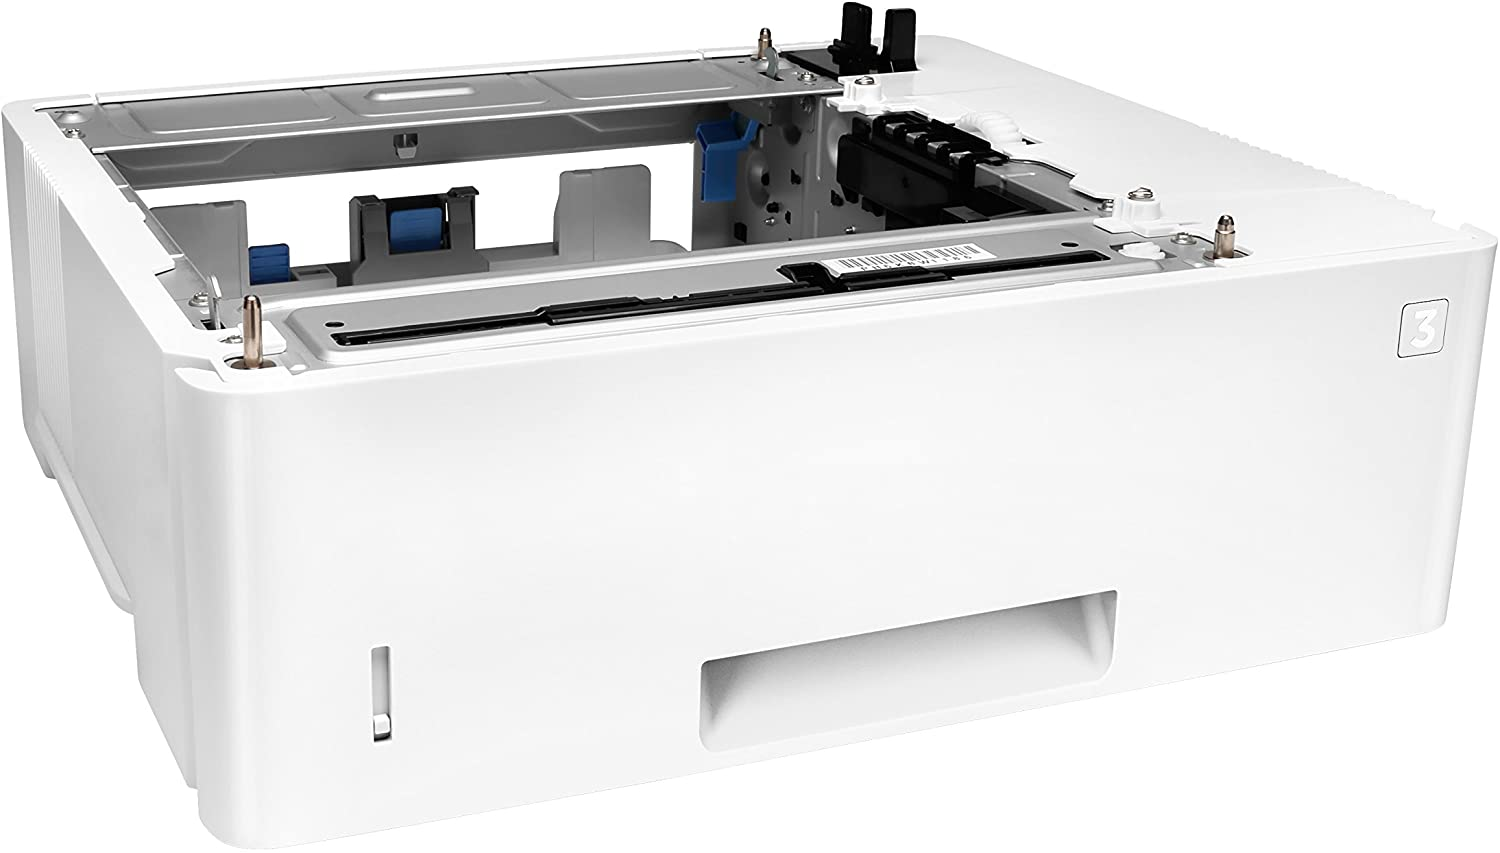 HP M607/M608/M609 Series Optional 550-sheet Feeder L0H17A, White, Model: 2M3EY91 Image